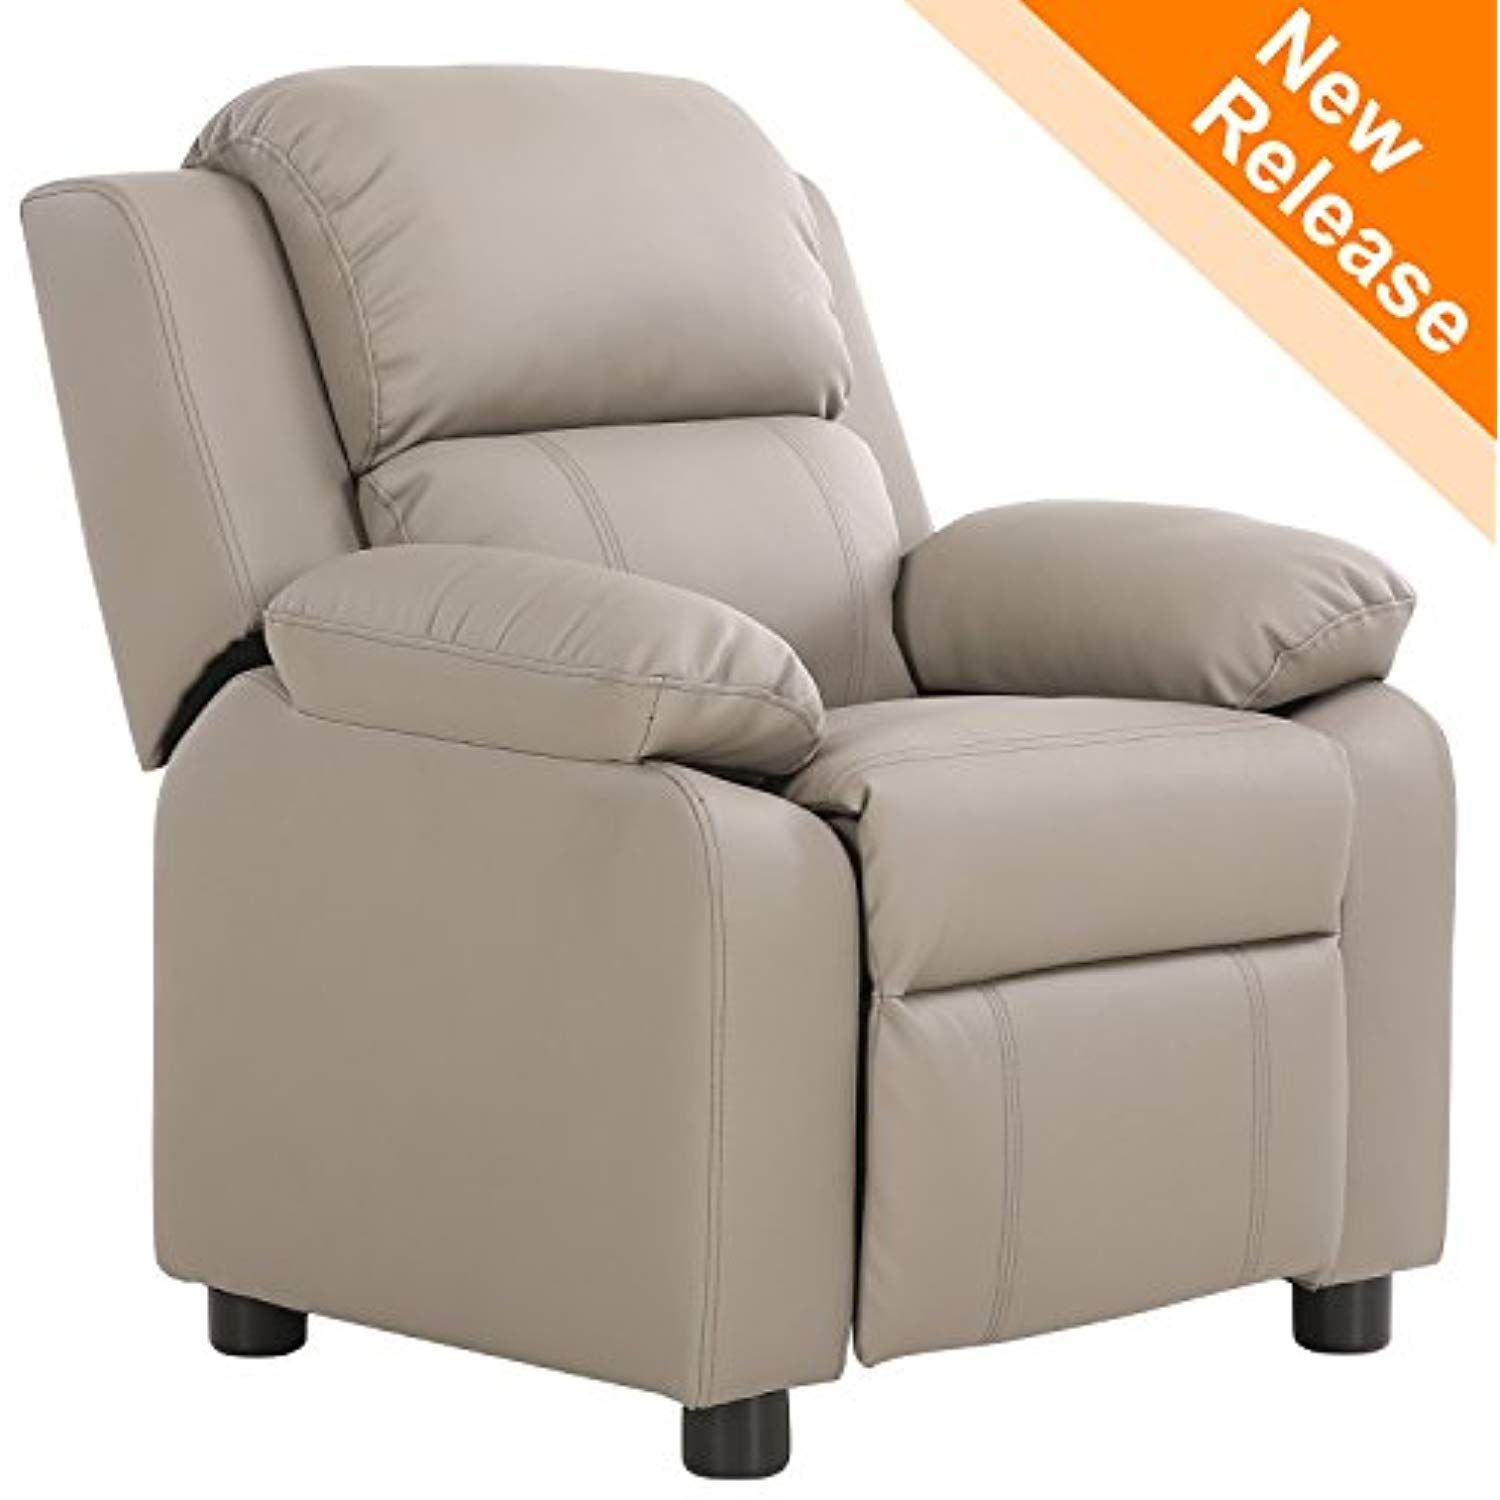 Lch Contemporary Pu Leather Kids Recliner With Deluxe Padded Backrest And Flip Up Storage Arms